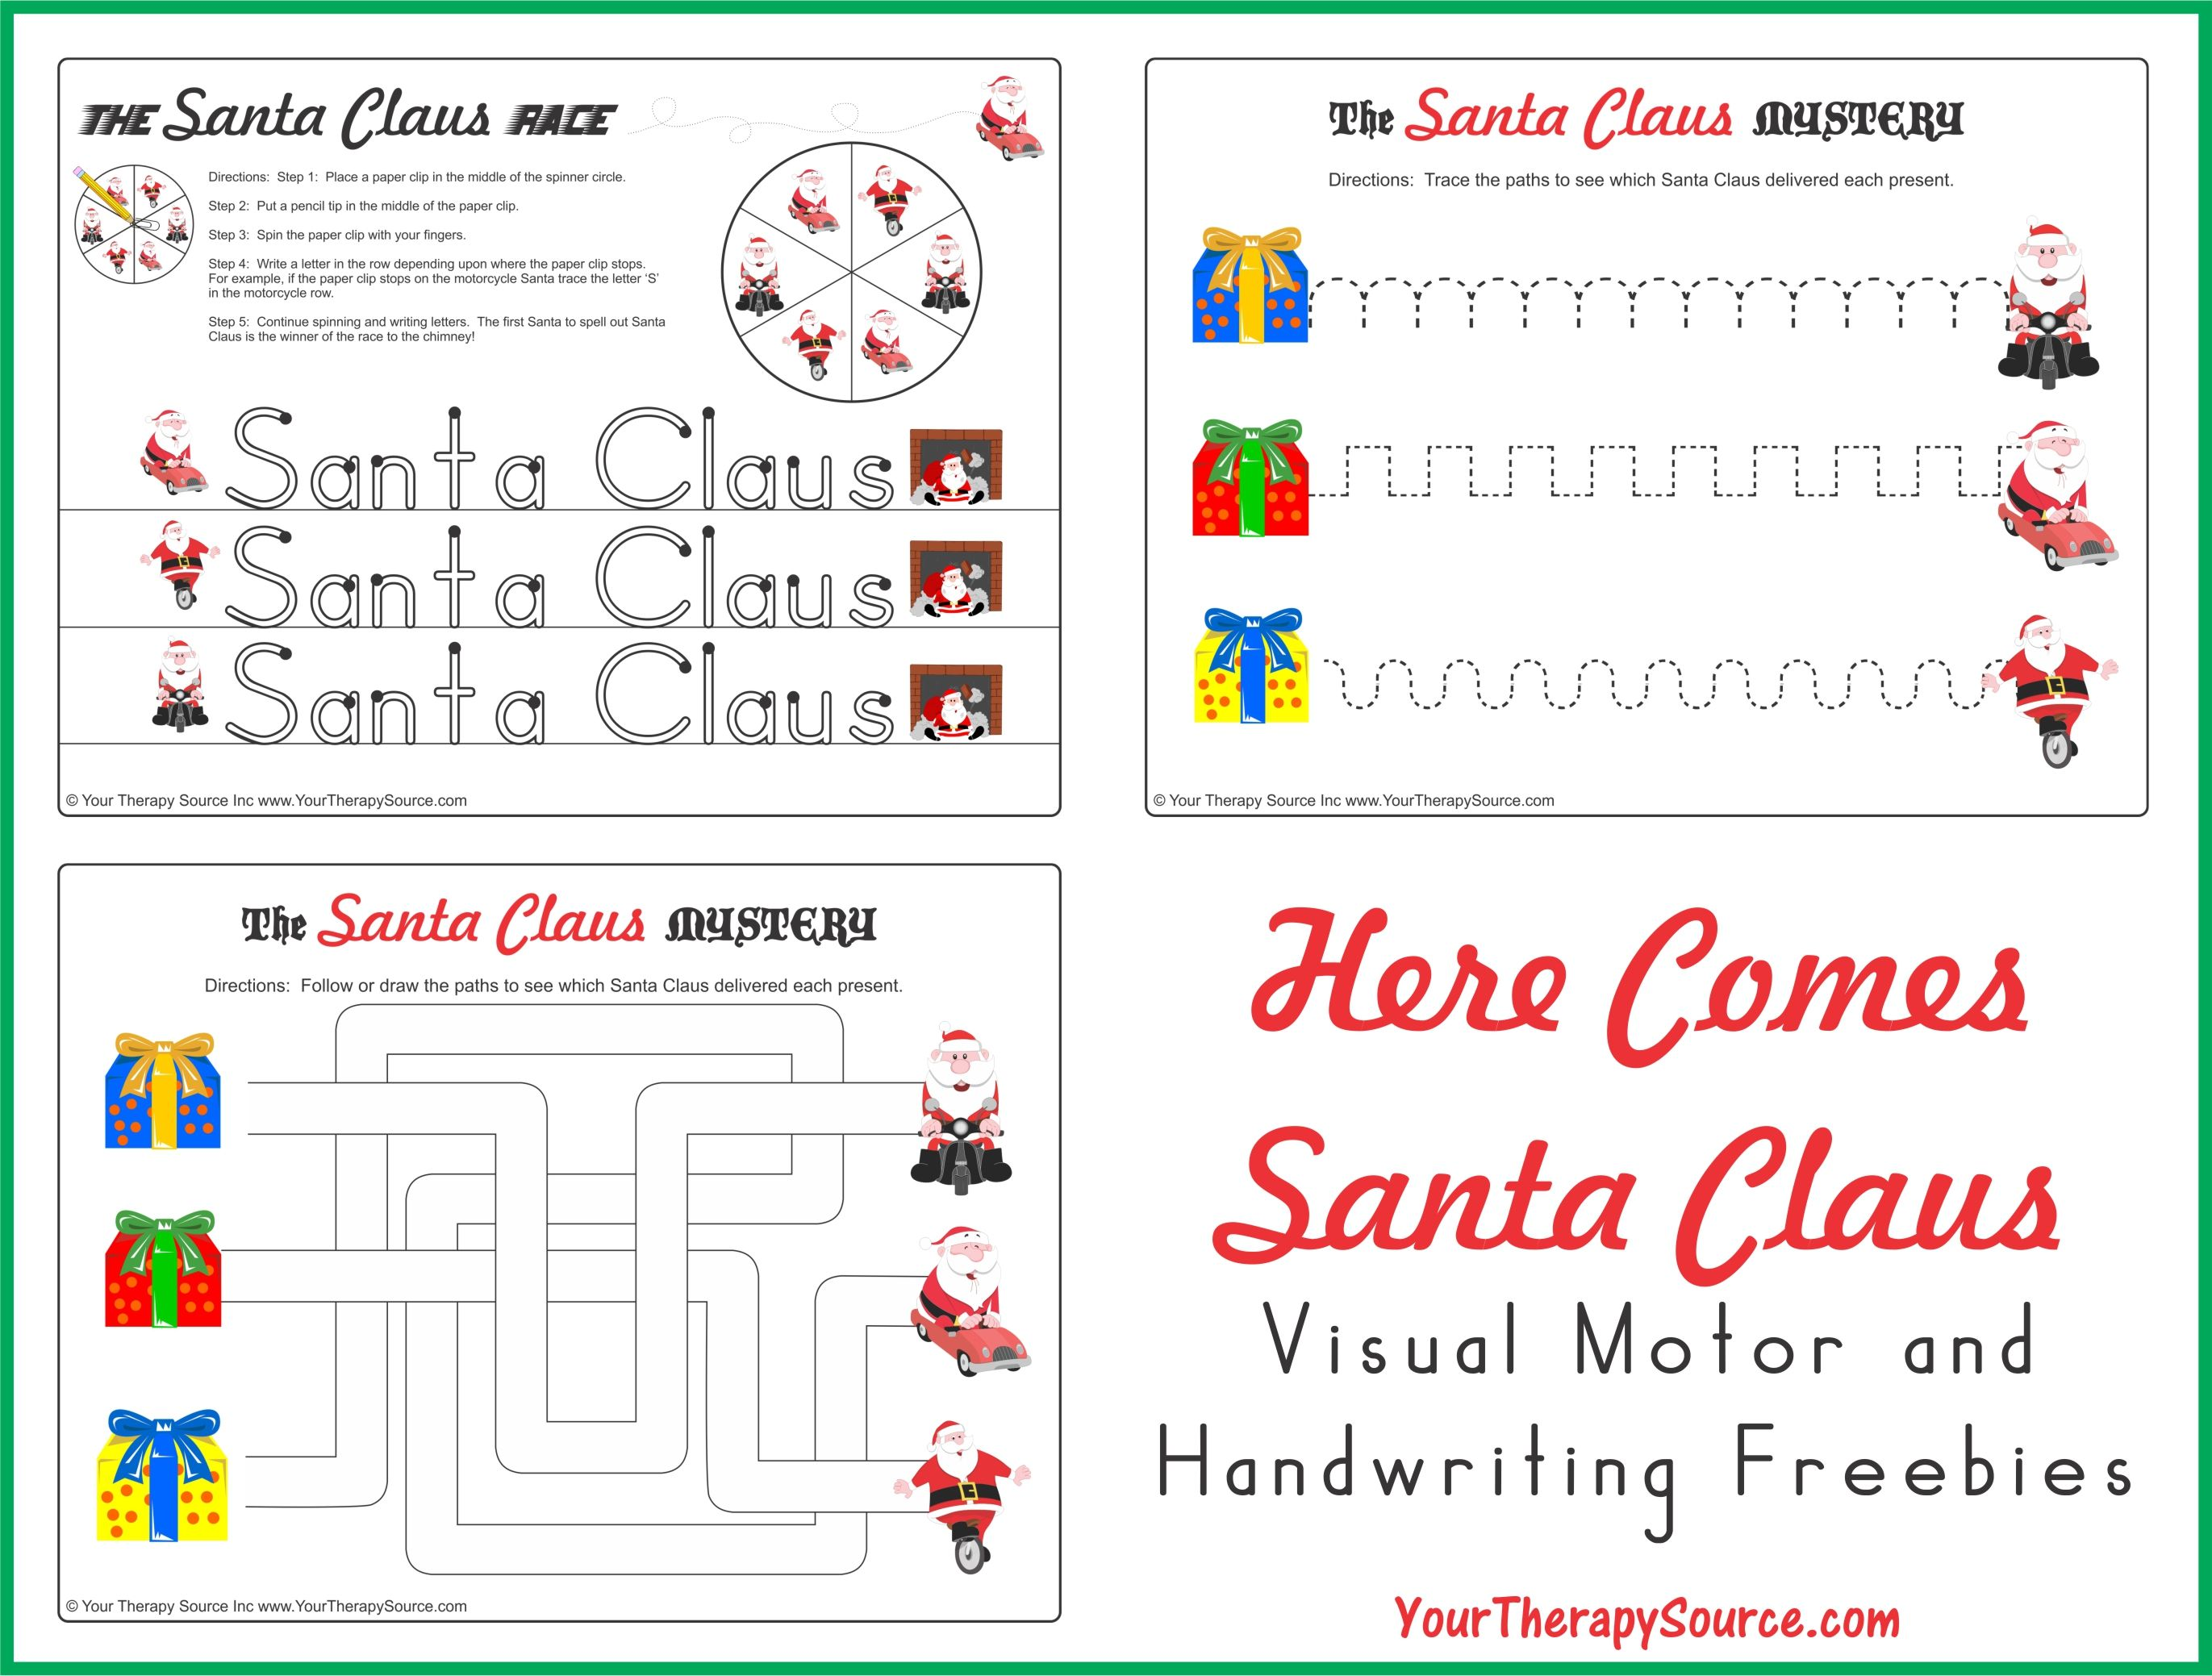 here comes santa claus visual motor freebie your therapy source - Santa Claus Activities